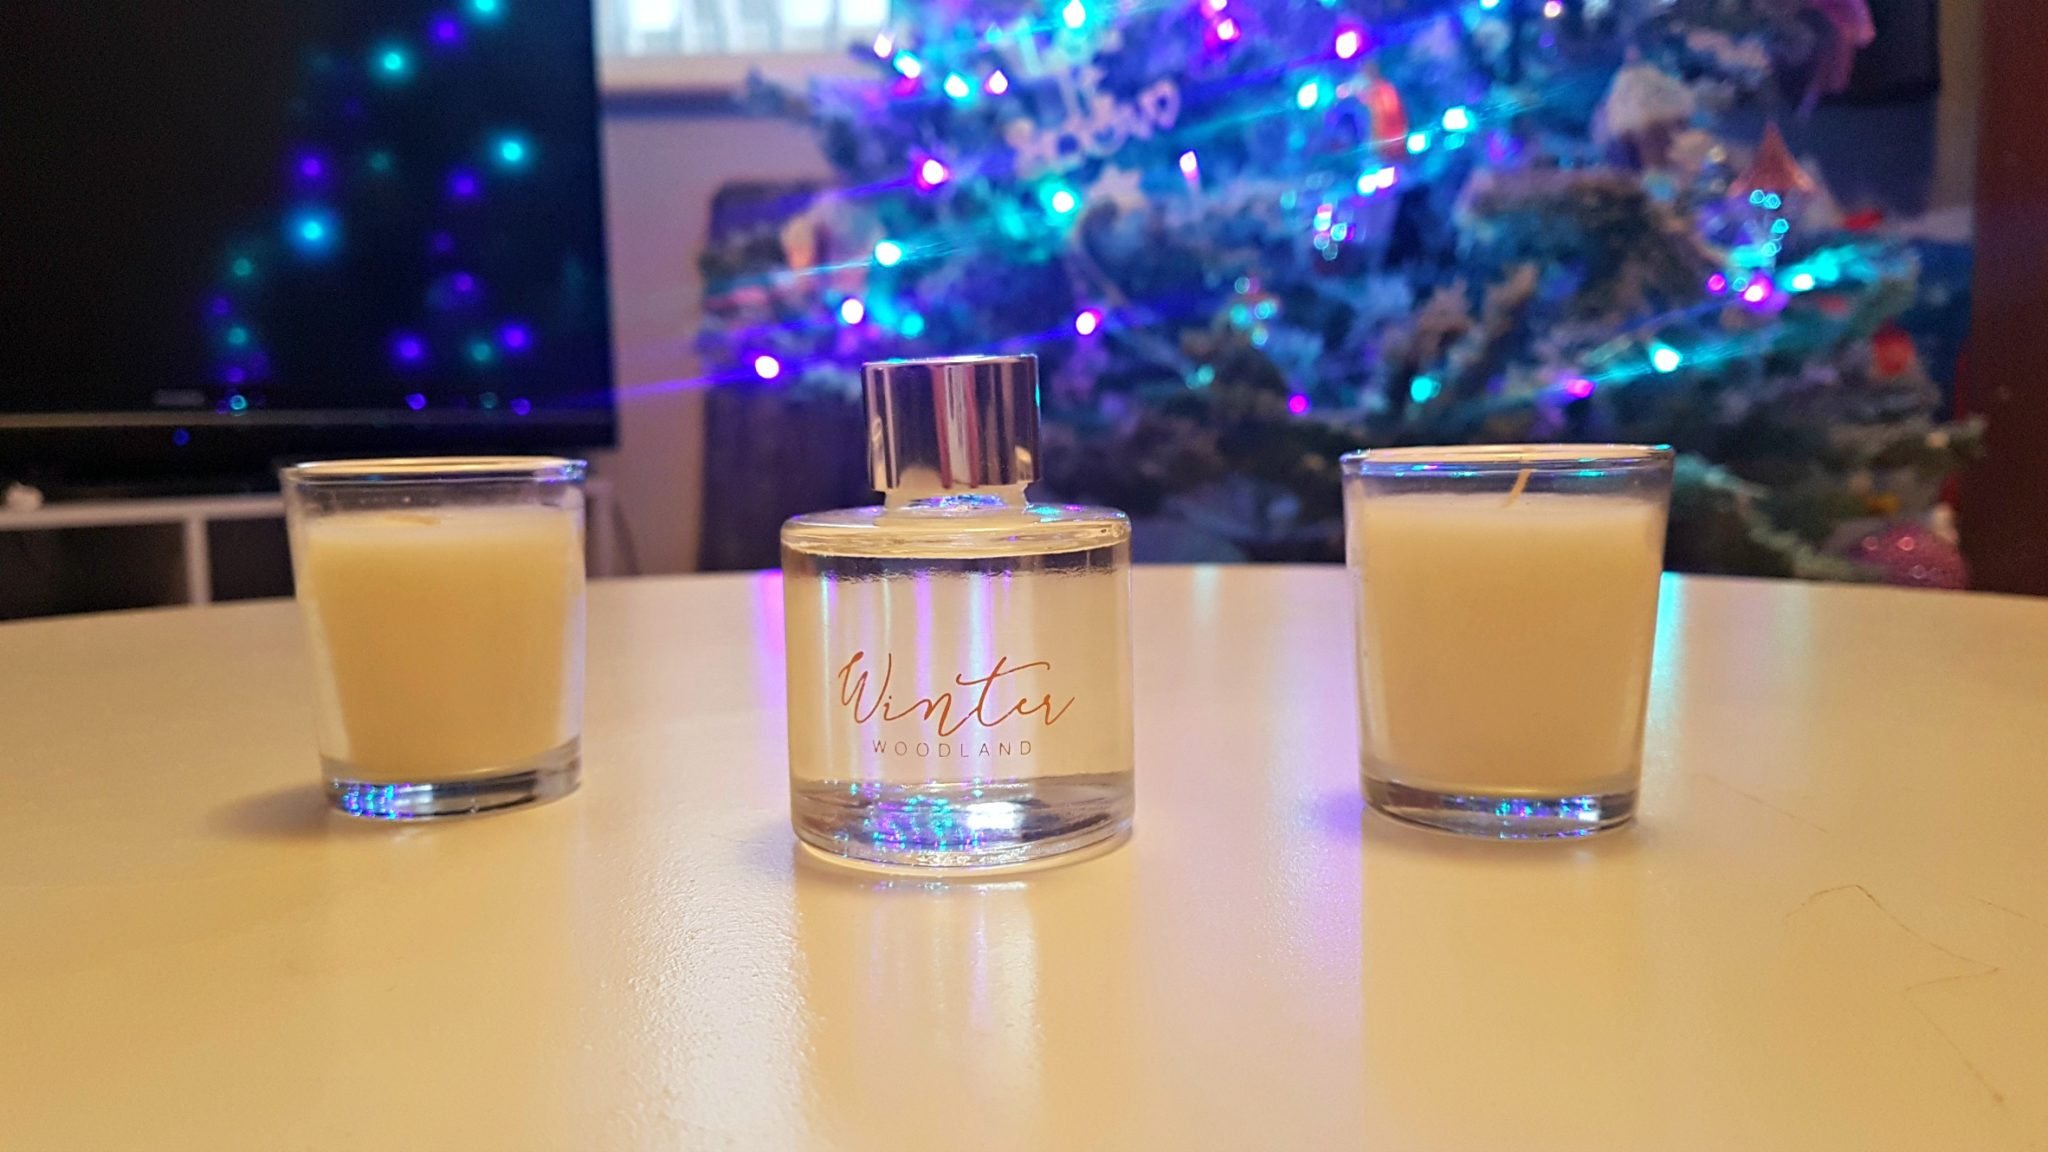 a close up of a small reed diffuser bottle with white candles either side on a white table with a christmas tree blurred in the background